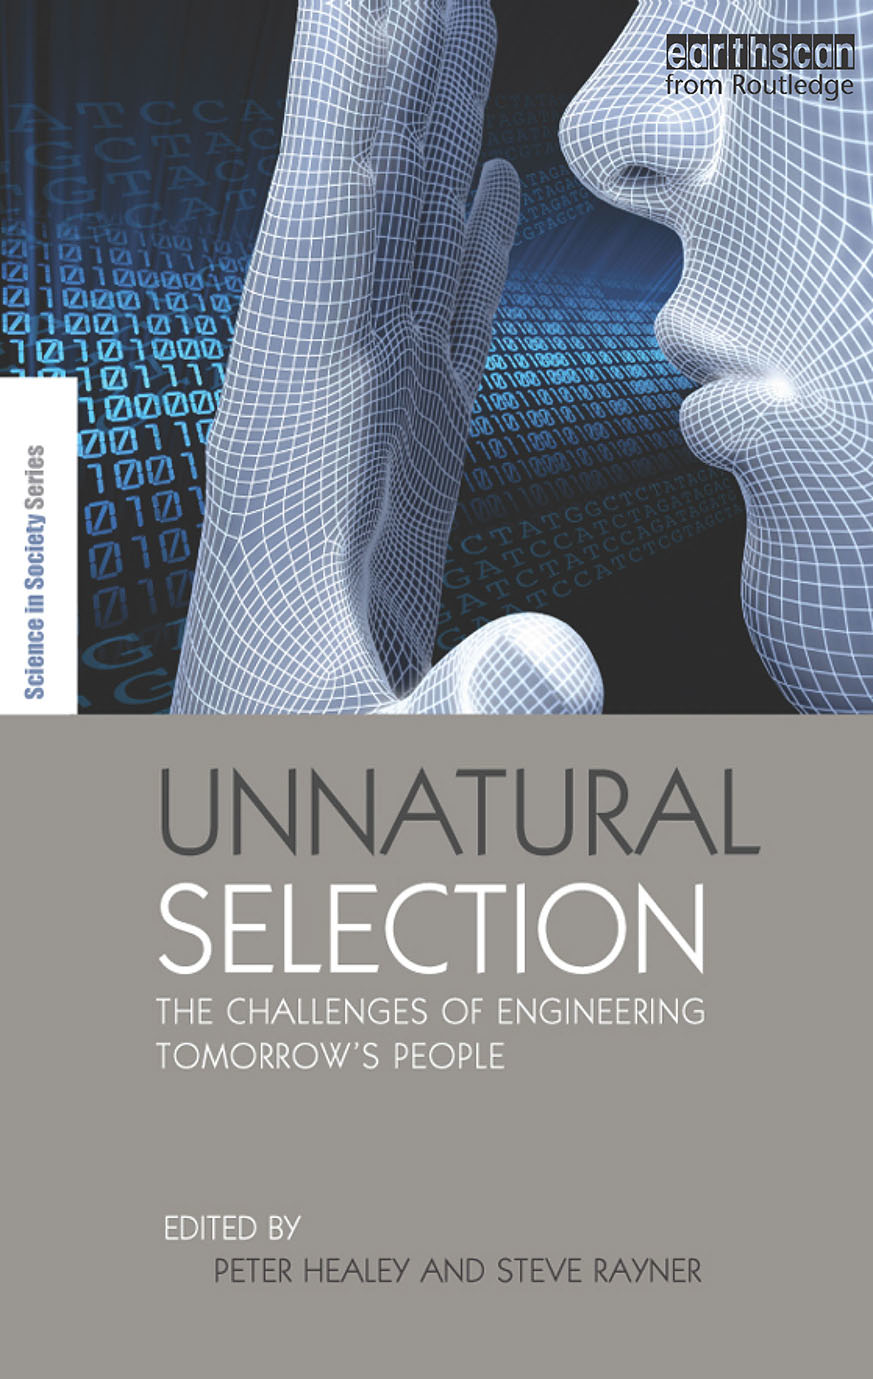 Unnatural Selection The Challenges of Engineering Tomorrow's People